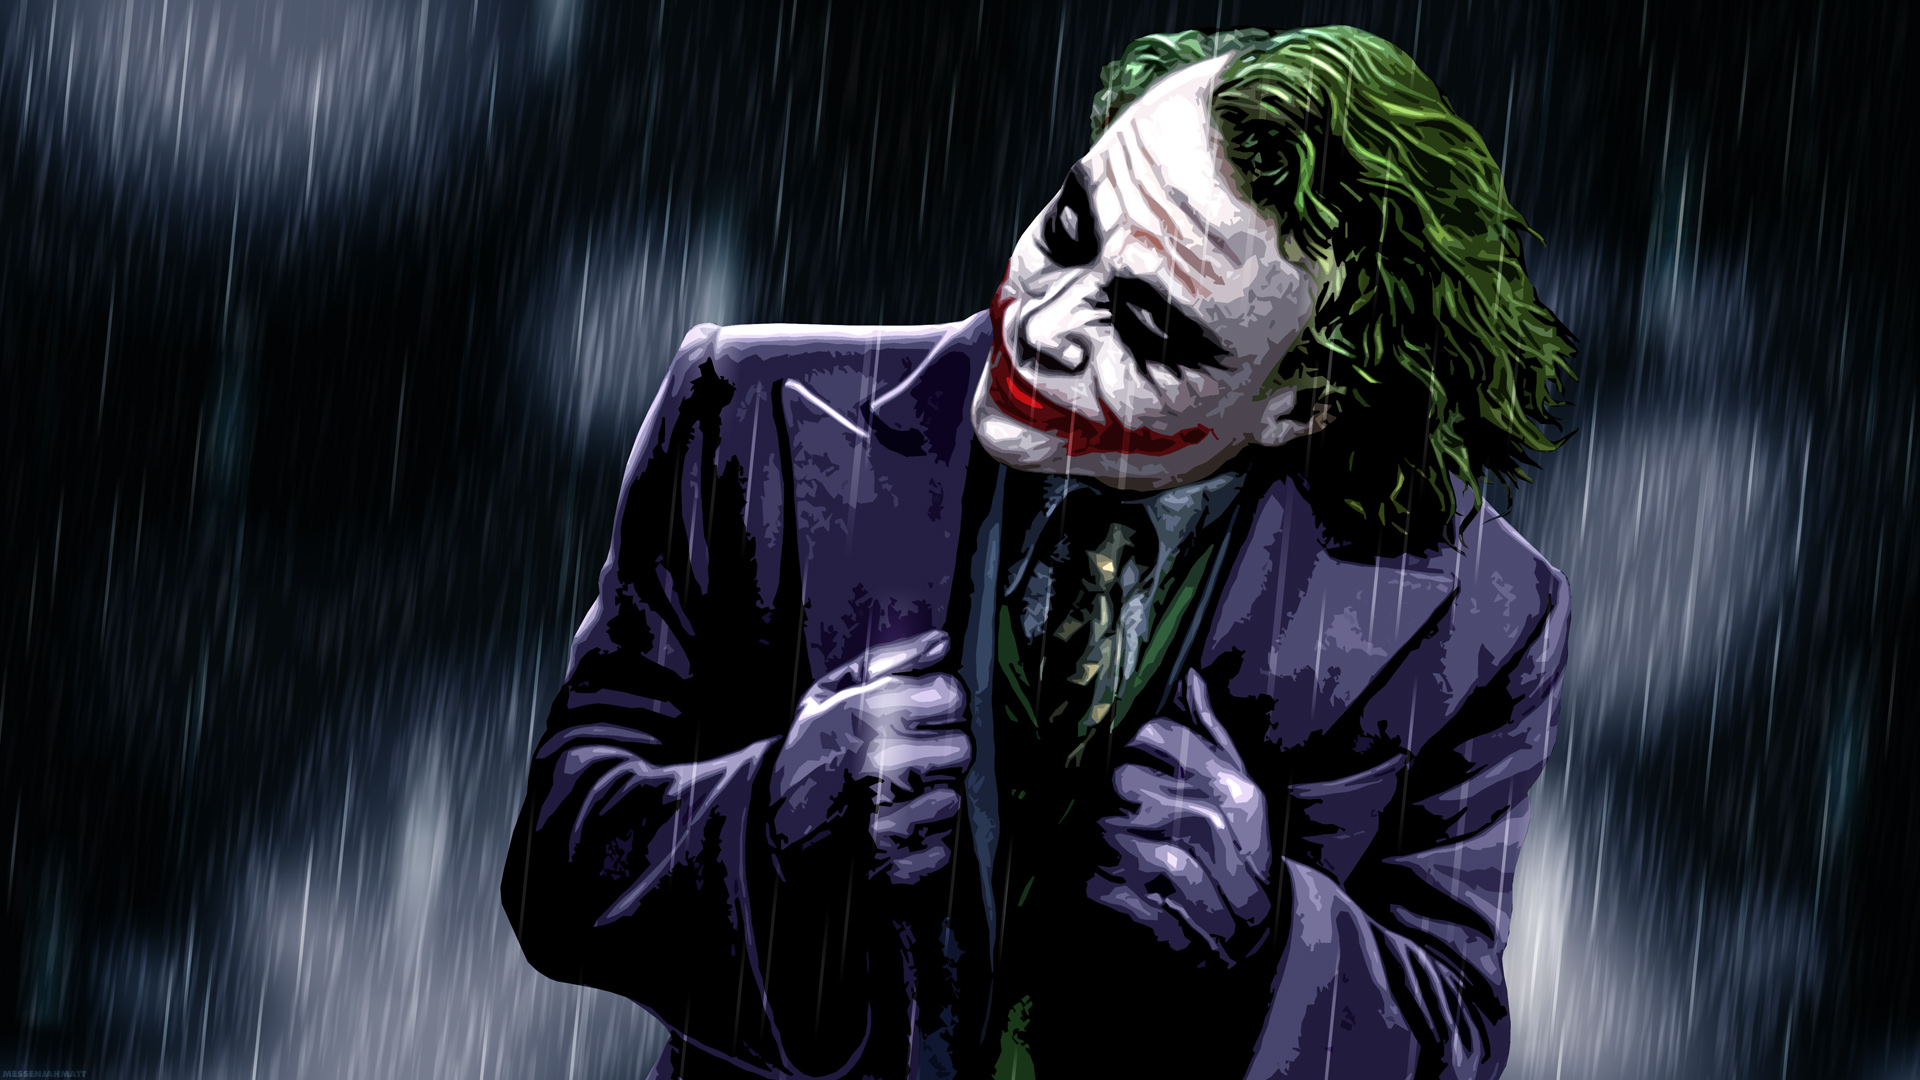 The Joker The Dark Knight Wallpaper 23437897 Fanpop 1920x1080